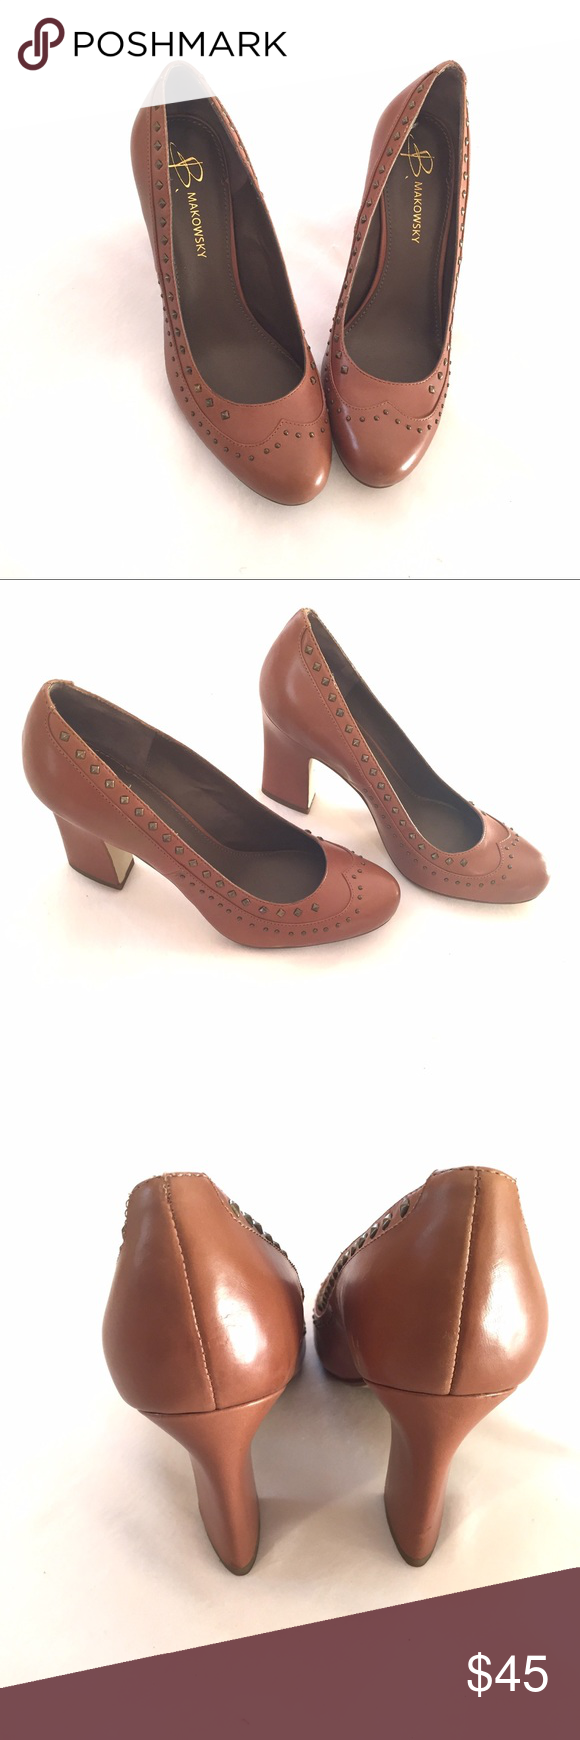 "🌟FLASH SALE 🌟🎉HOST PICK 🎉 B. Makowsky pumps Great pair of pumps! Brown leather upper with stud detailing. Heel is approx 3 3/4"".  Size 7. These haven't been worn outside. In photo #4, you can see a discoloration that is on the instep- it's not a scuff just a lighter area.  🌟FLASH SALE PRICE IS FIRM UNLESS BUNDLED 🌟 b. makowsky Shoes Heels"